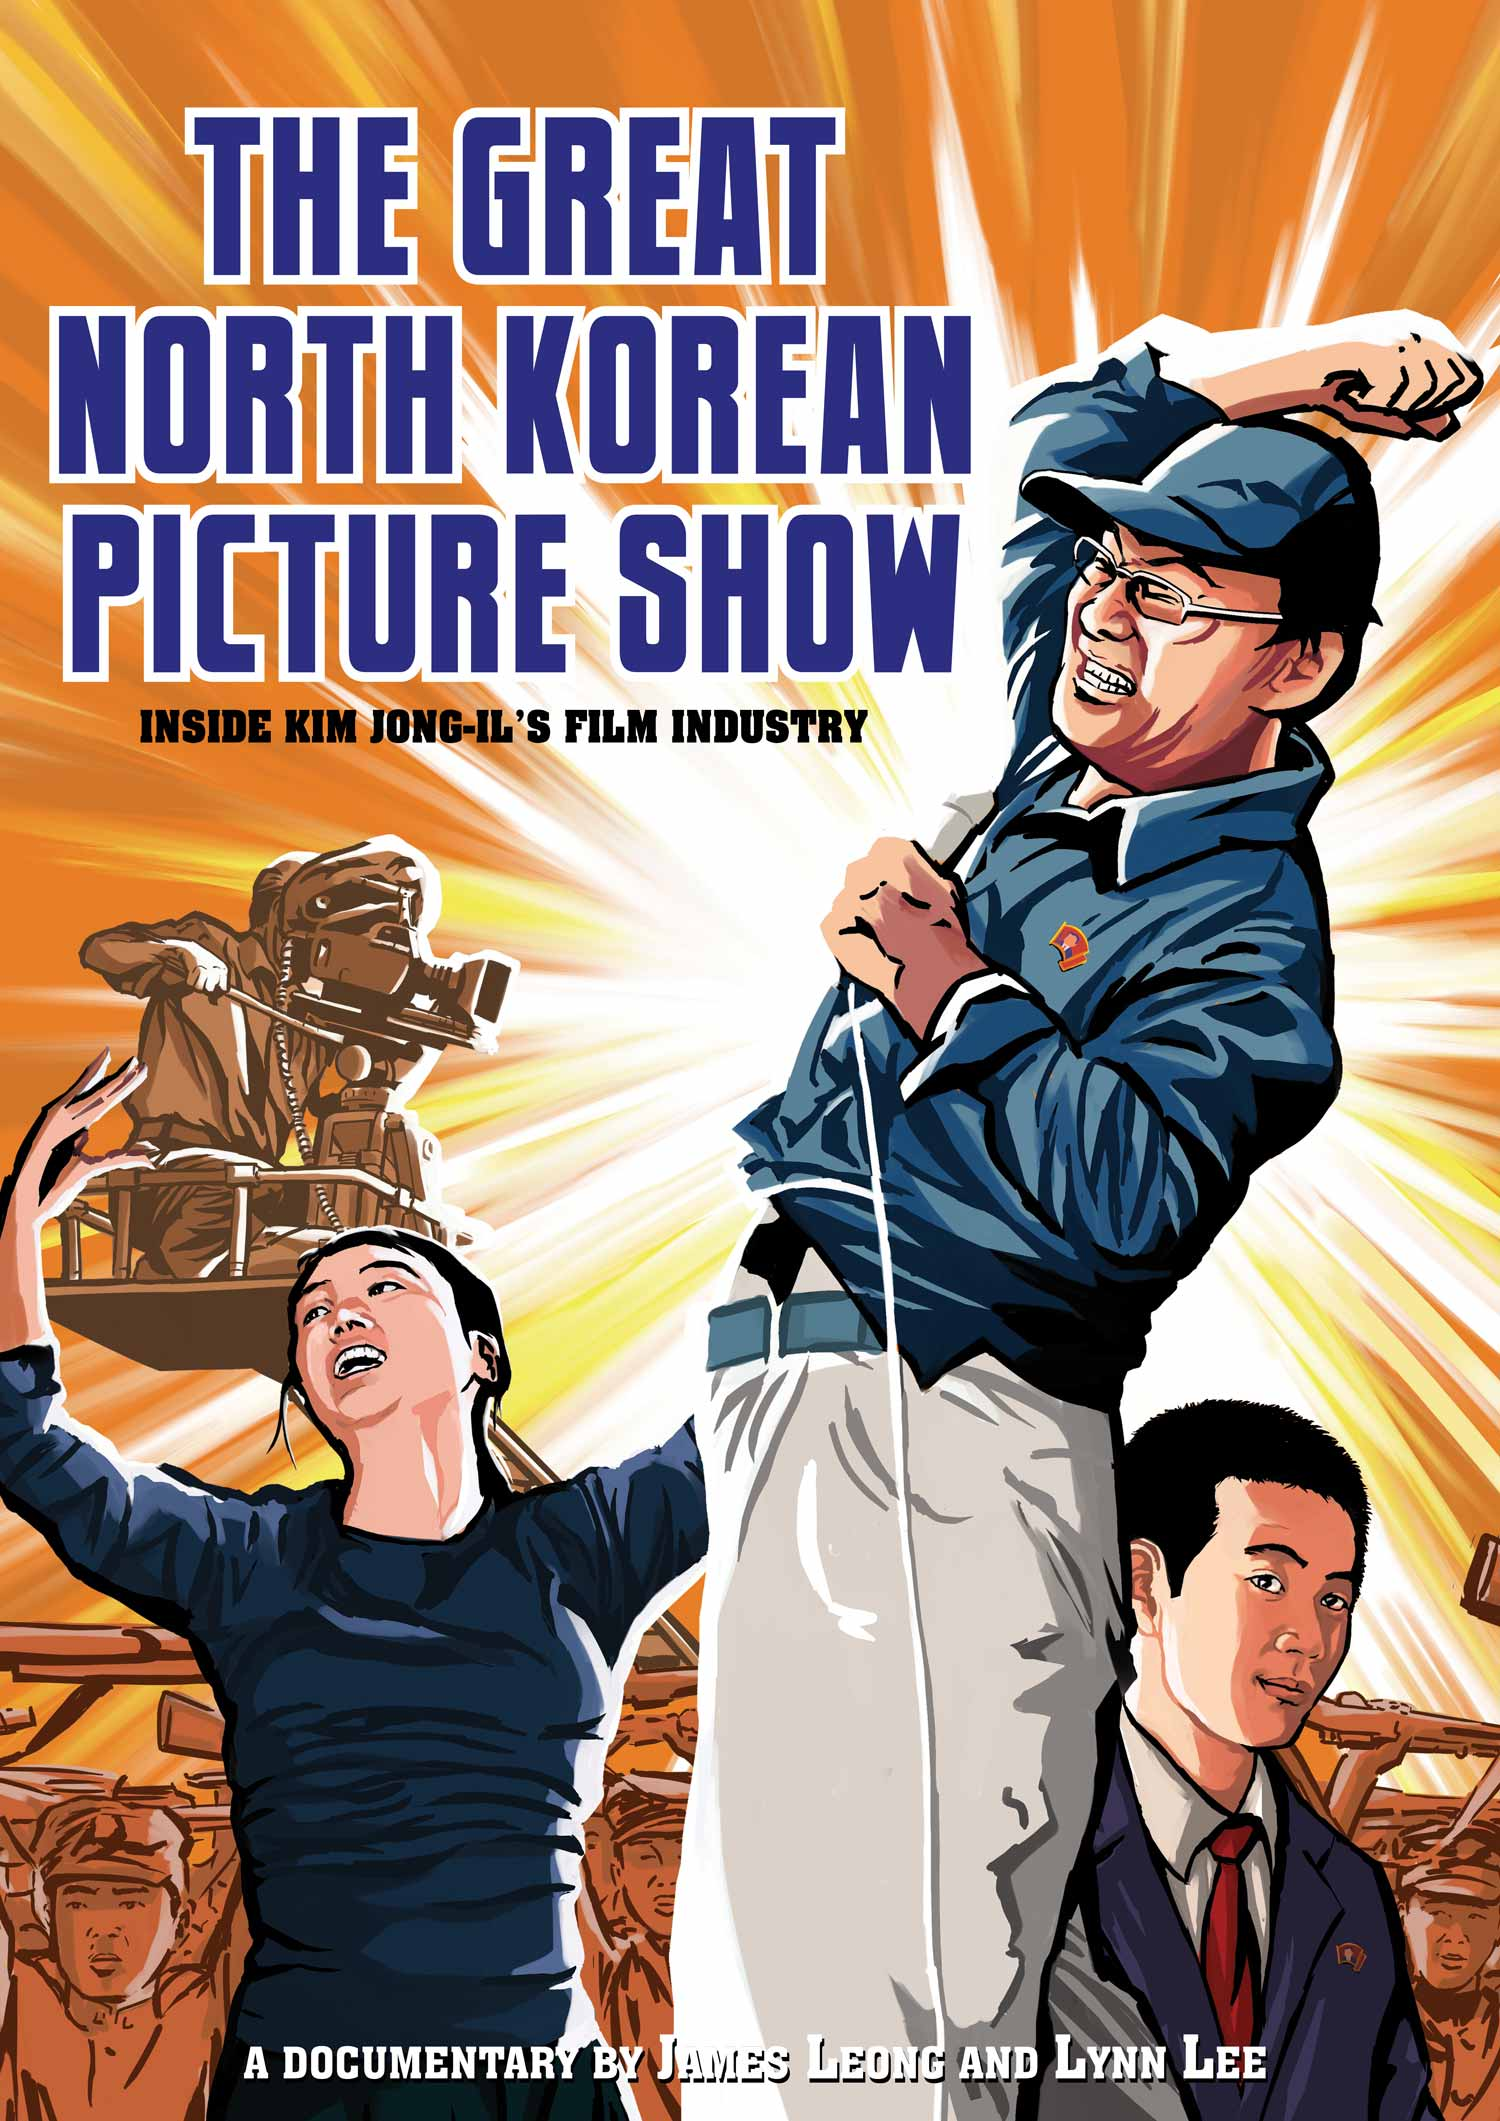 The Great North Korean Picture Show by Lynn Lee & James Lee (FreedomFilmFest 2020)